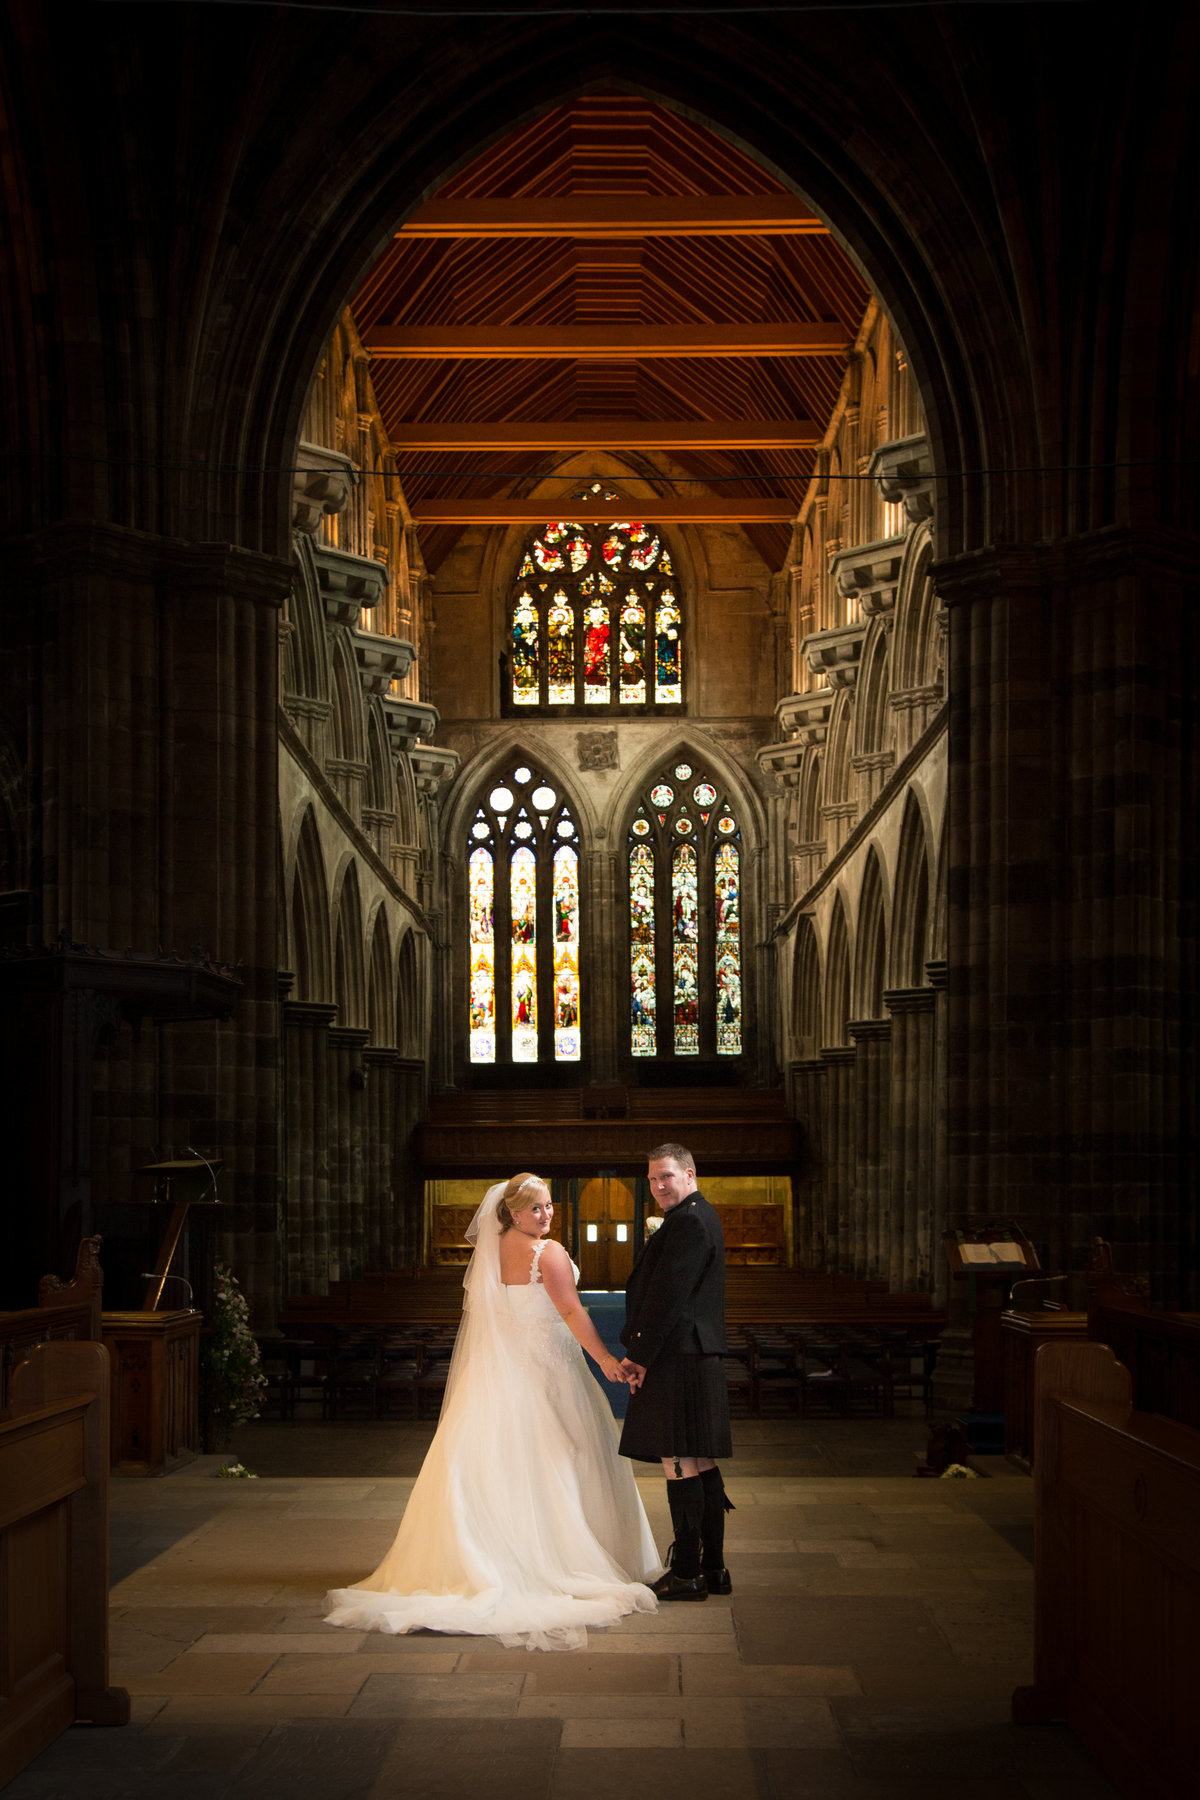 Bride and groom in stunning abbey setting